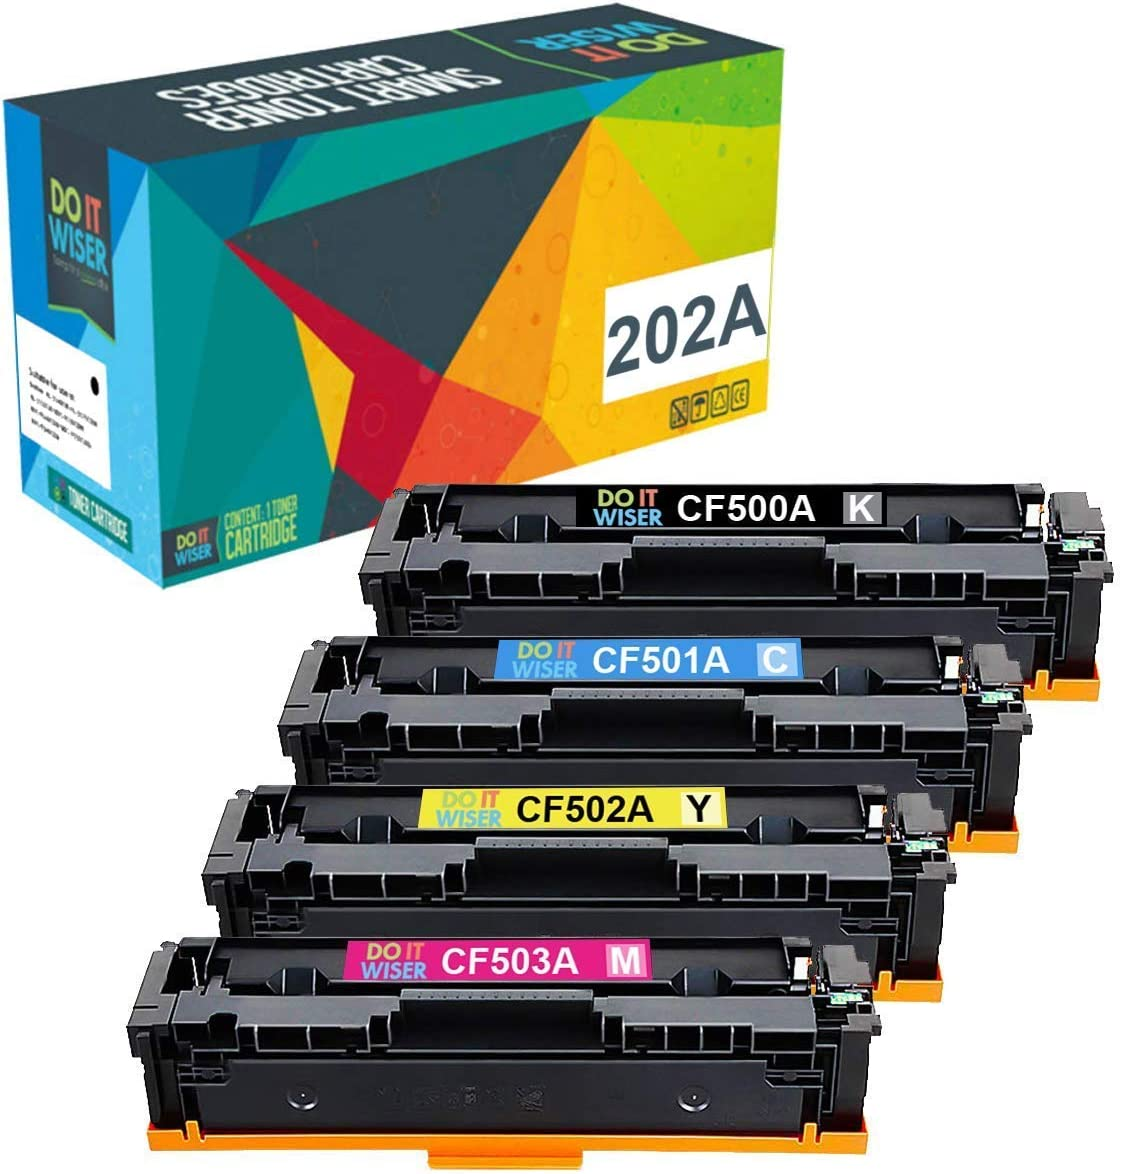 Do it Wiser Compatible Toner Cartridge Replacement for HP 202A CF500A M281 Color Laserjet Pro MFP M281fdw M281cdw M254nw M281fdn M280nw M254dw CF501A CF502A CF503A (Black Cyan Yellow Magenta, 4-Pack)